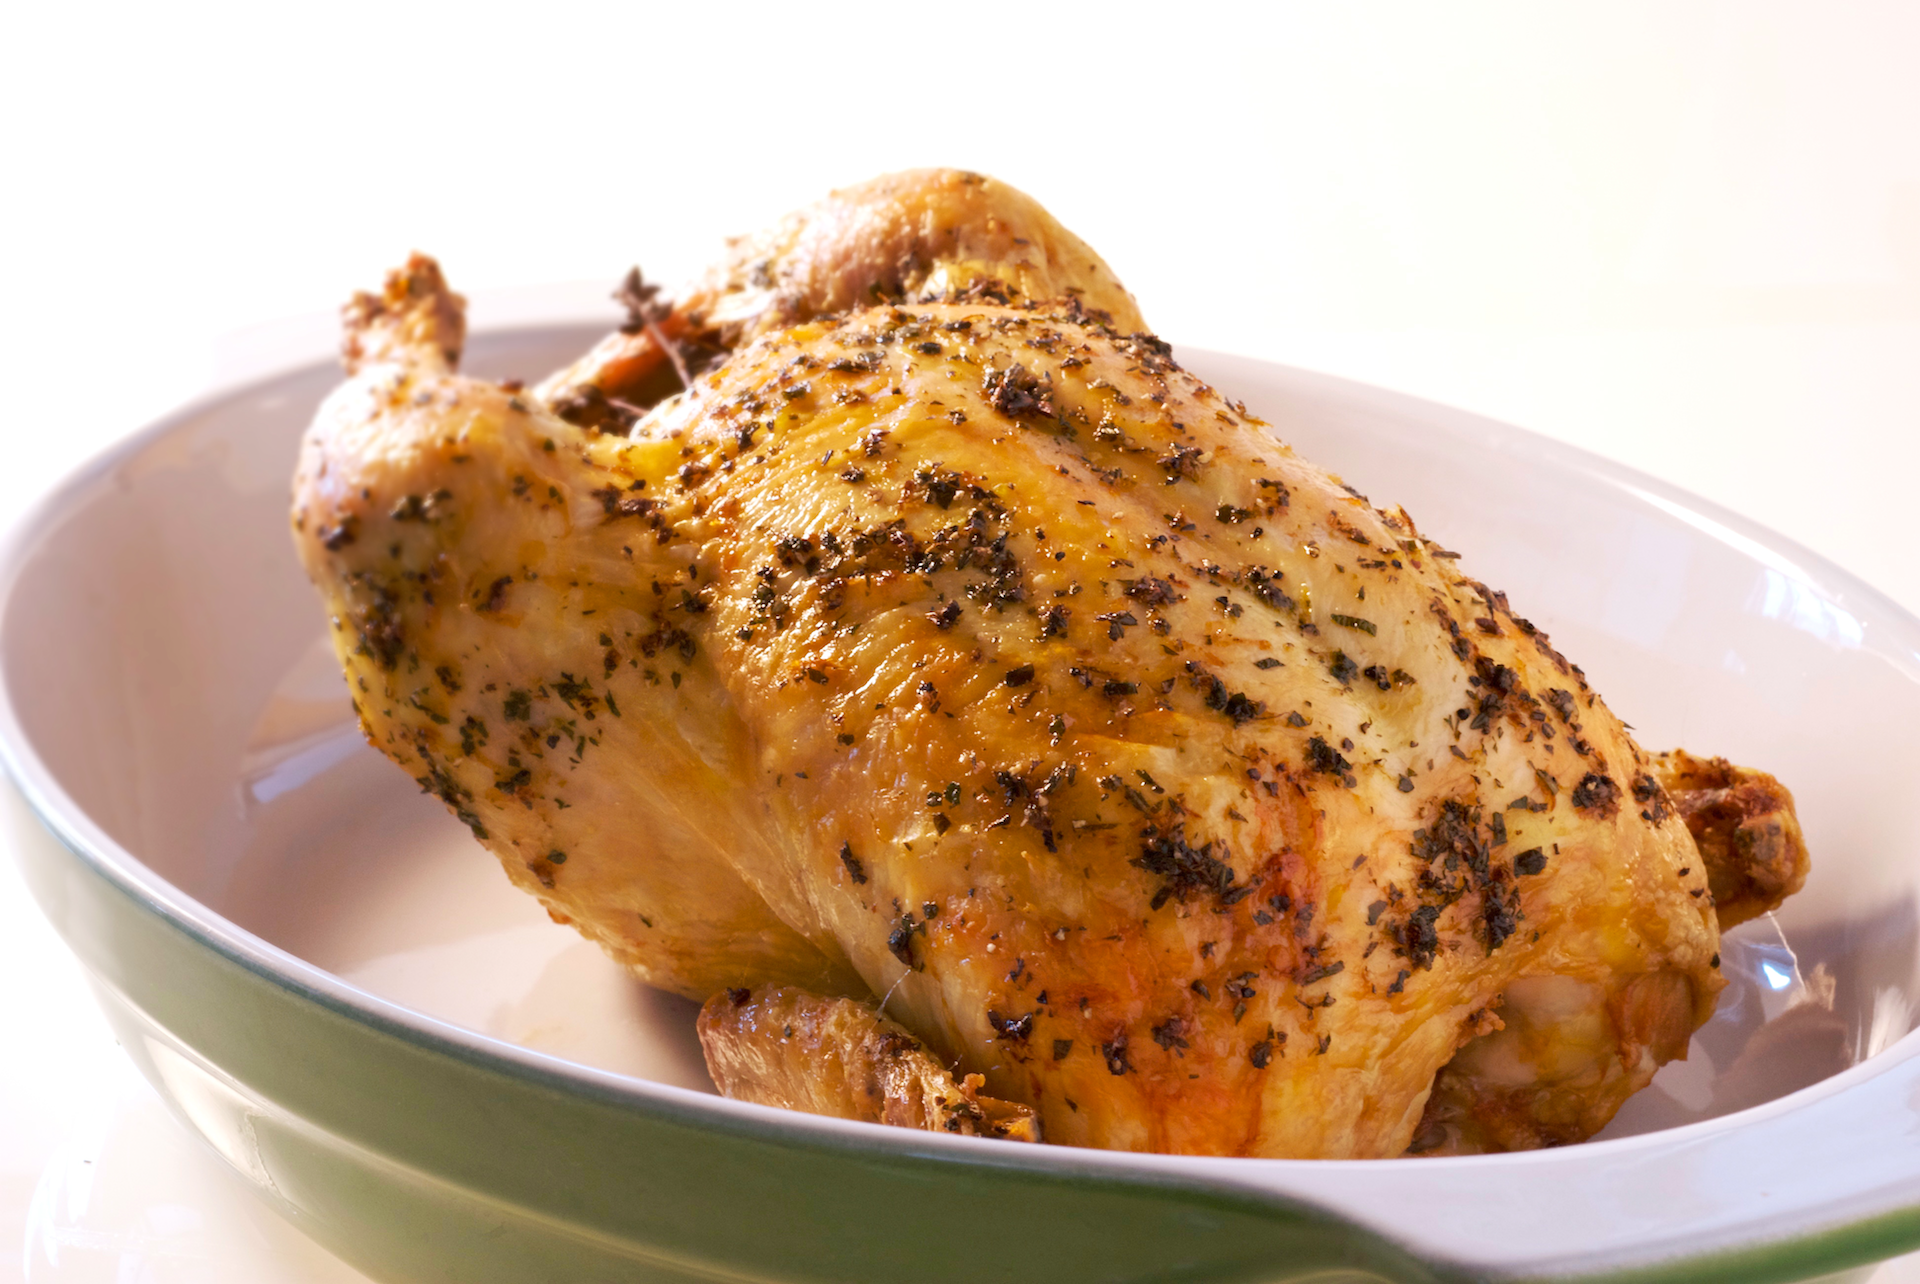 This succulent herb-roasted chicken seasoned with lemon, garlic and fresh herbs will fill the entire house with a rich, comforting aroma as it slowly roasts in the oven. Allow the chicken to rest prior to carving to ensure that all the succulent juices remain in the meat and not on your cutting board.